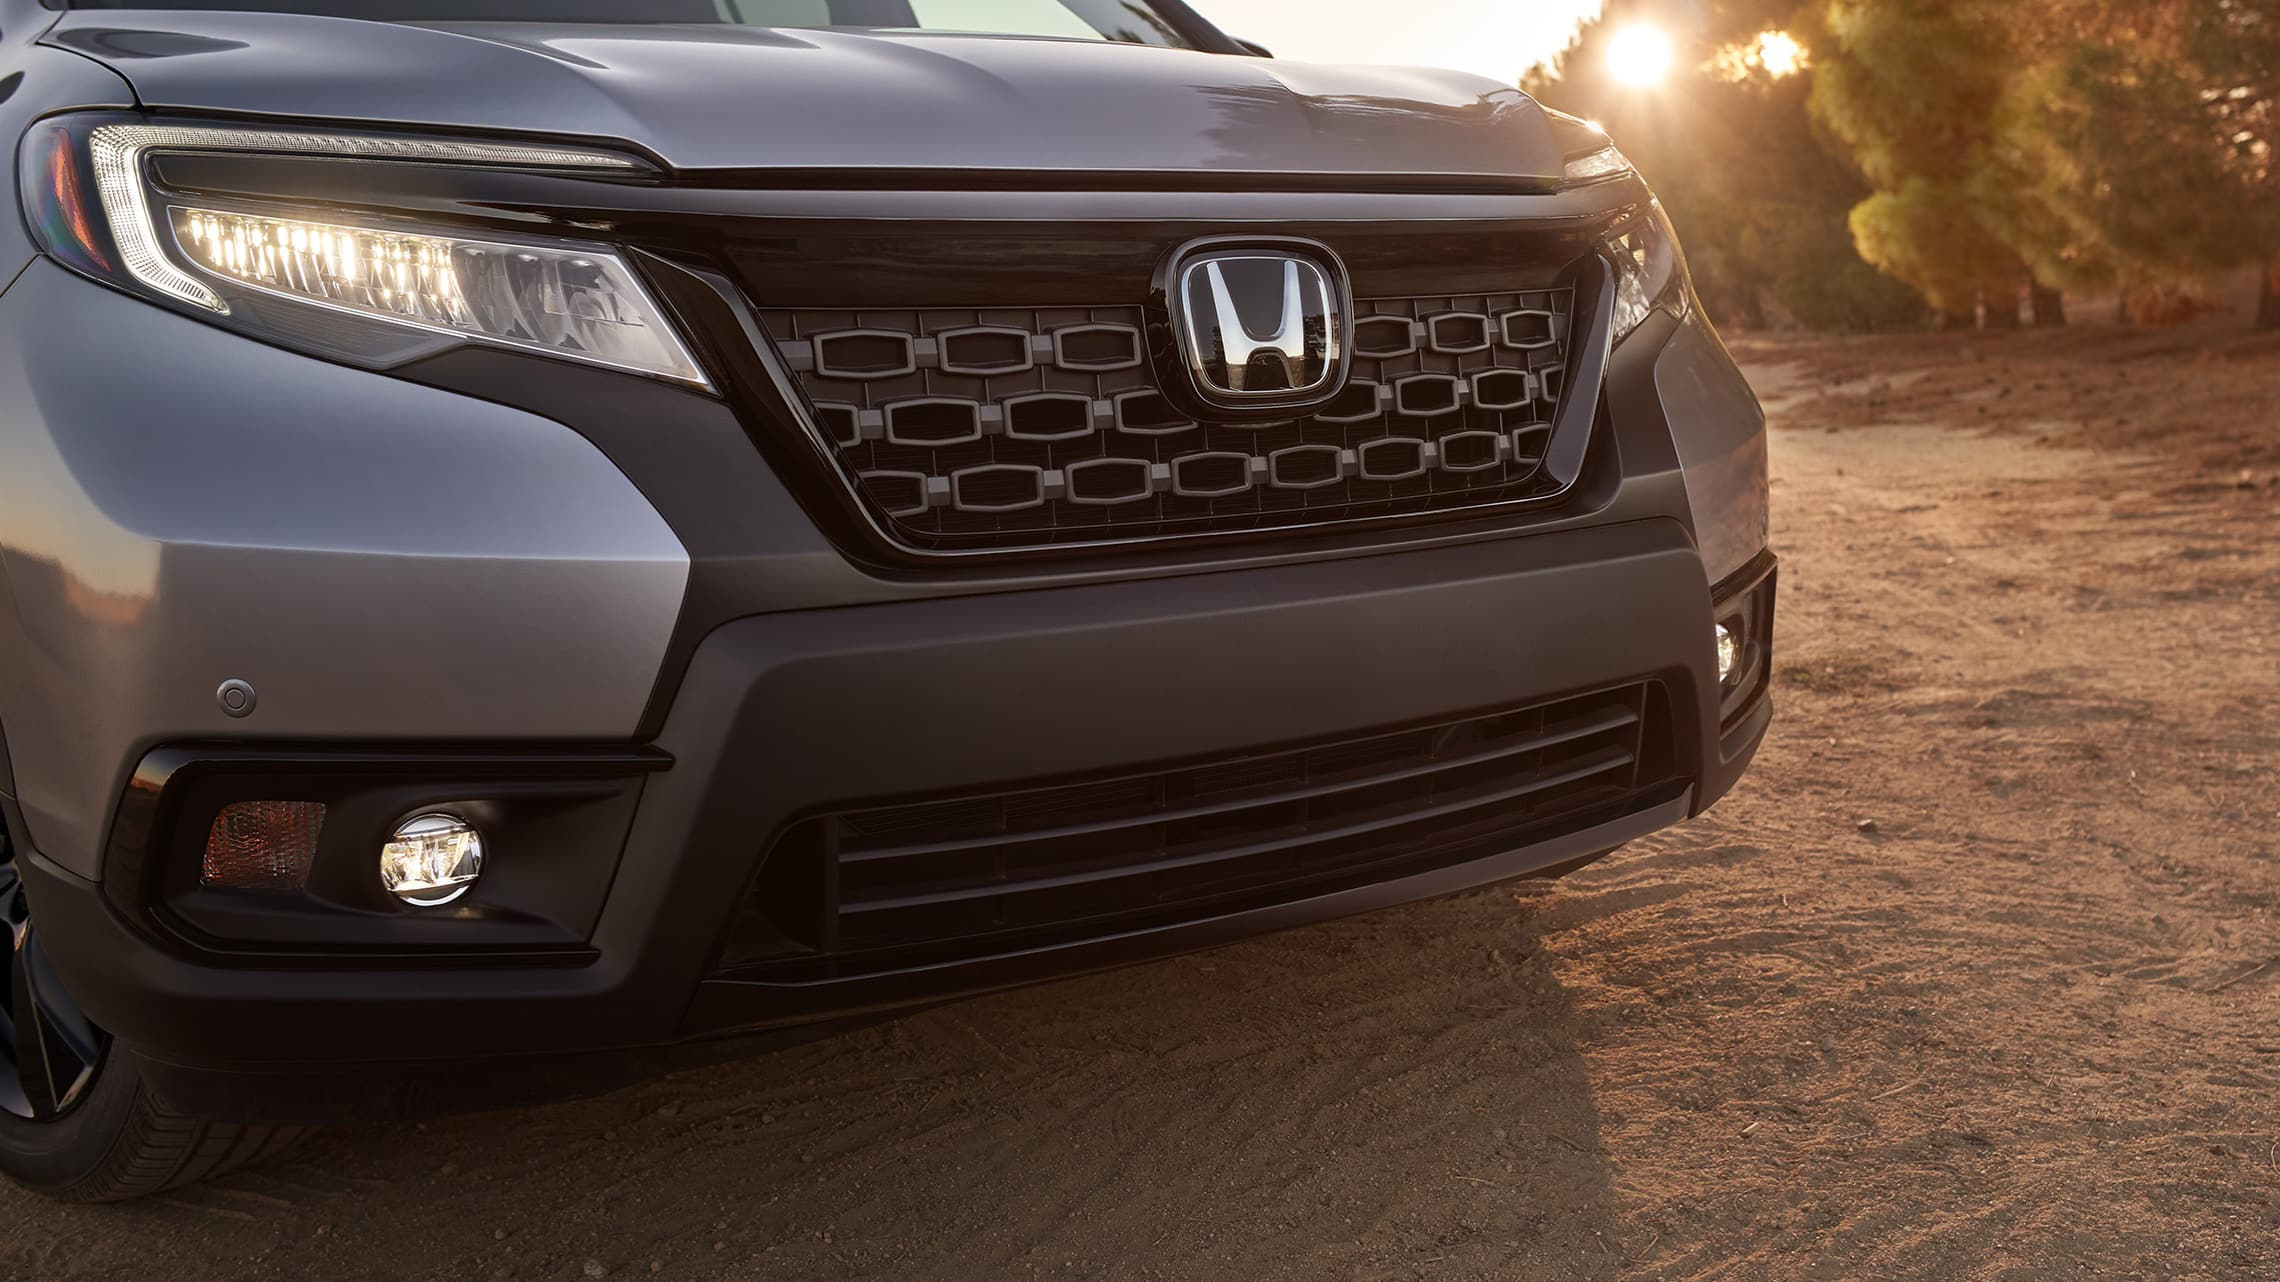 Grille detail on the 2021 Honda Passport Elite in Lunar Silver Metallic.